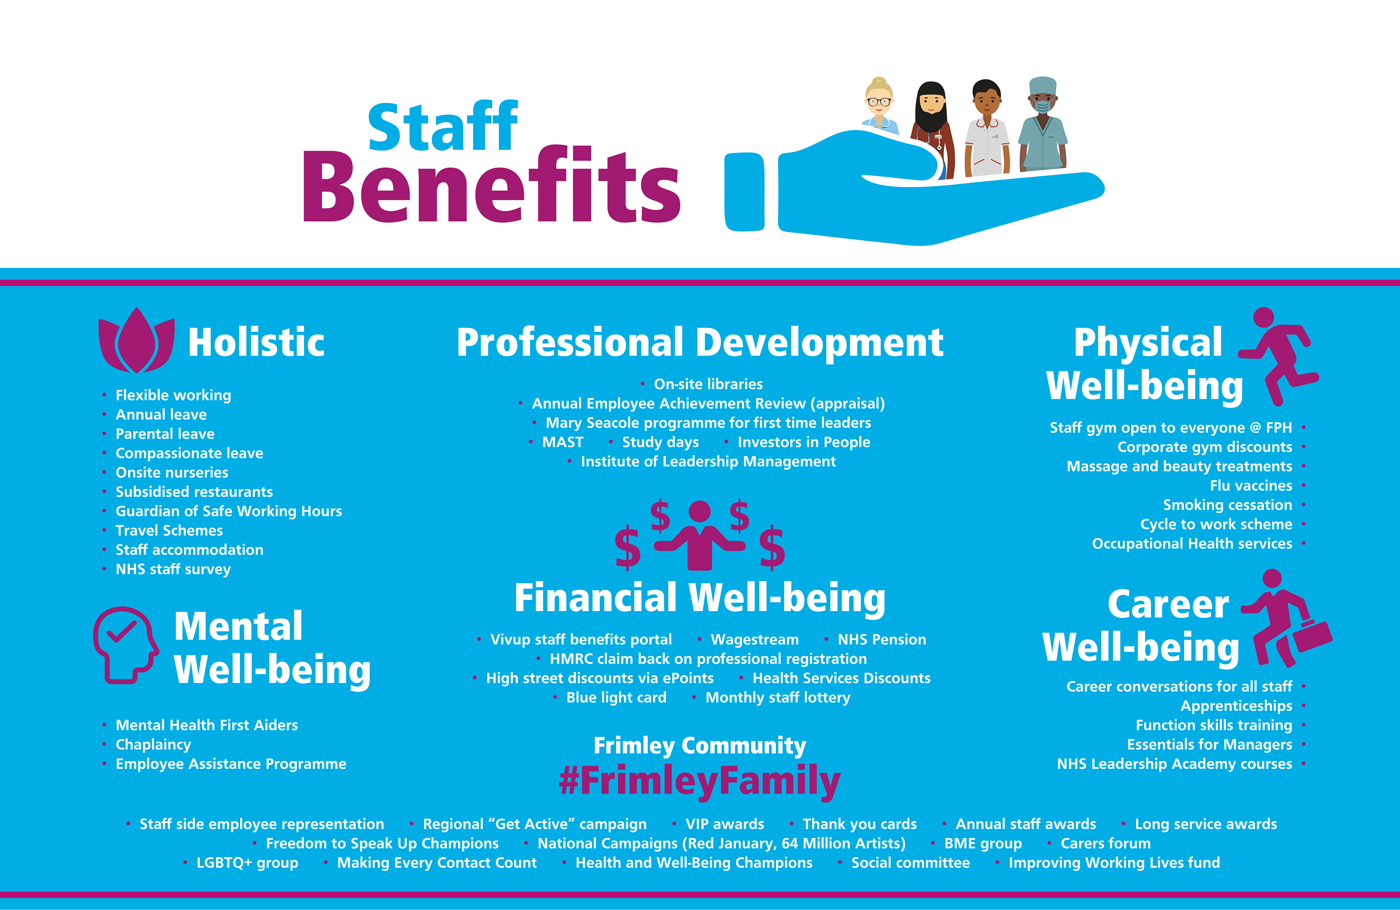 Staff Benefits